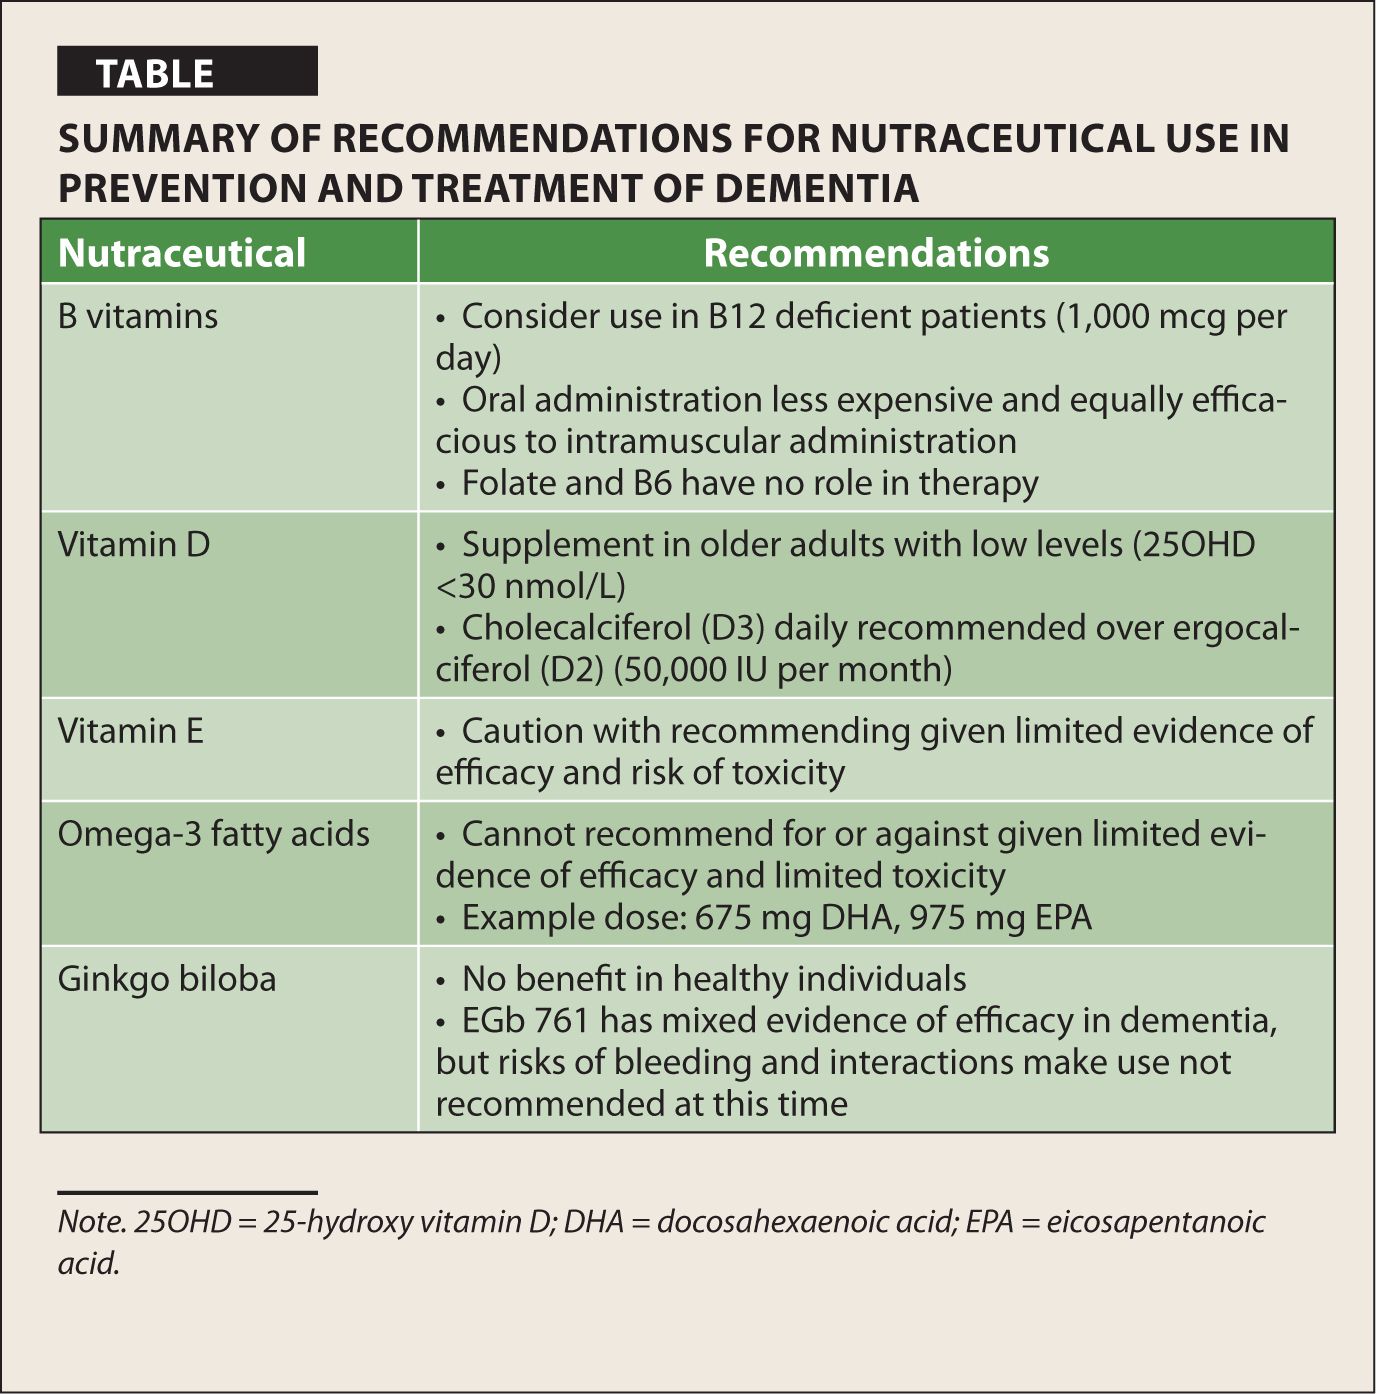 Summary of Recommendations for Nutraceutical Use in Prevention and Treatment of Dementia